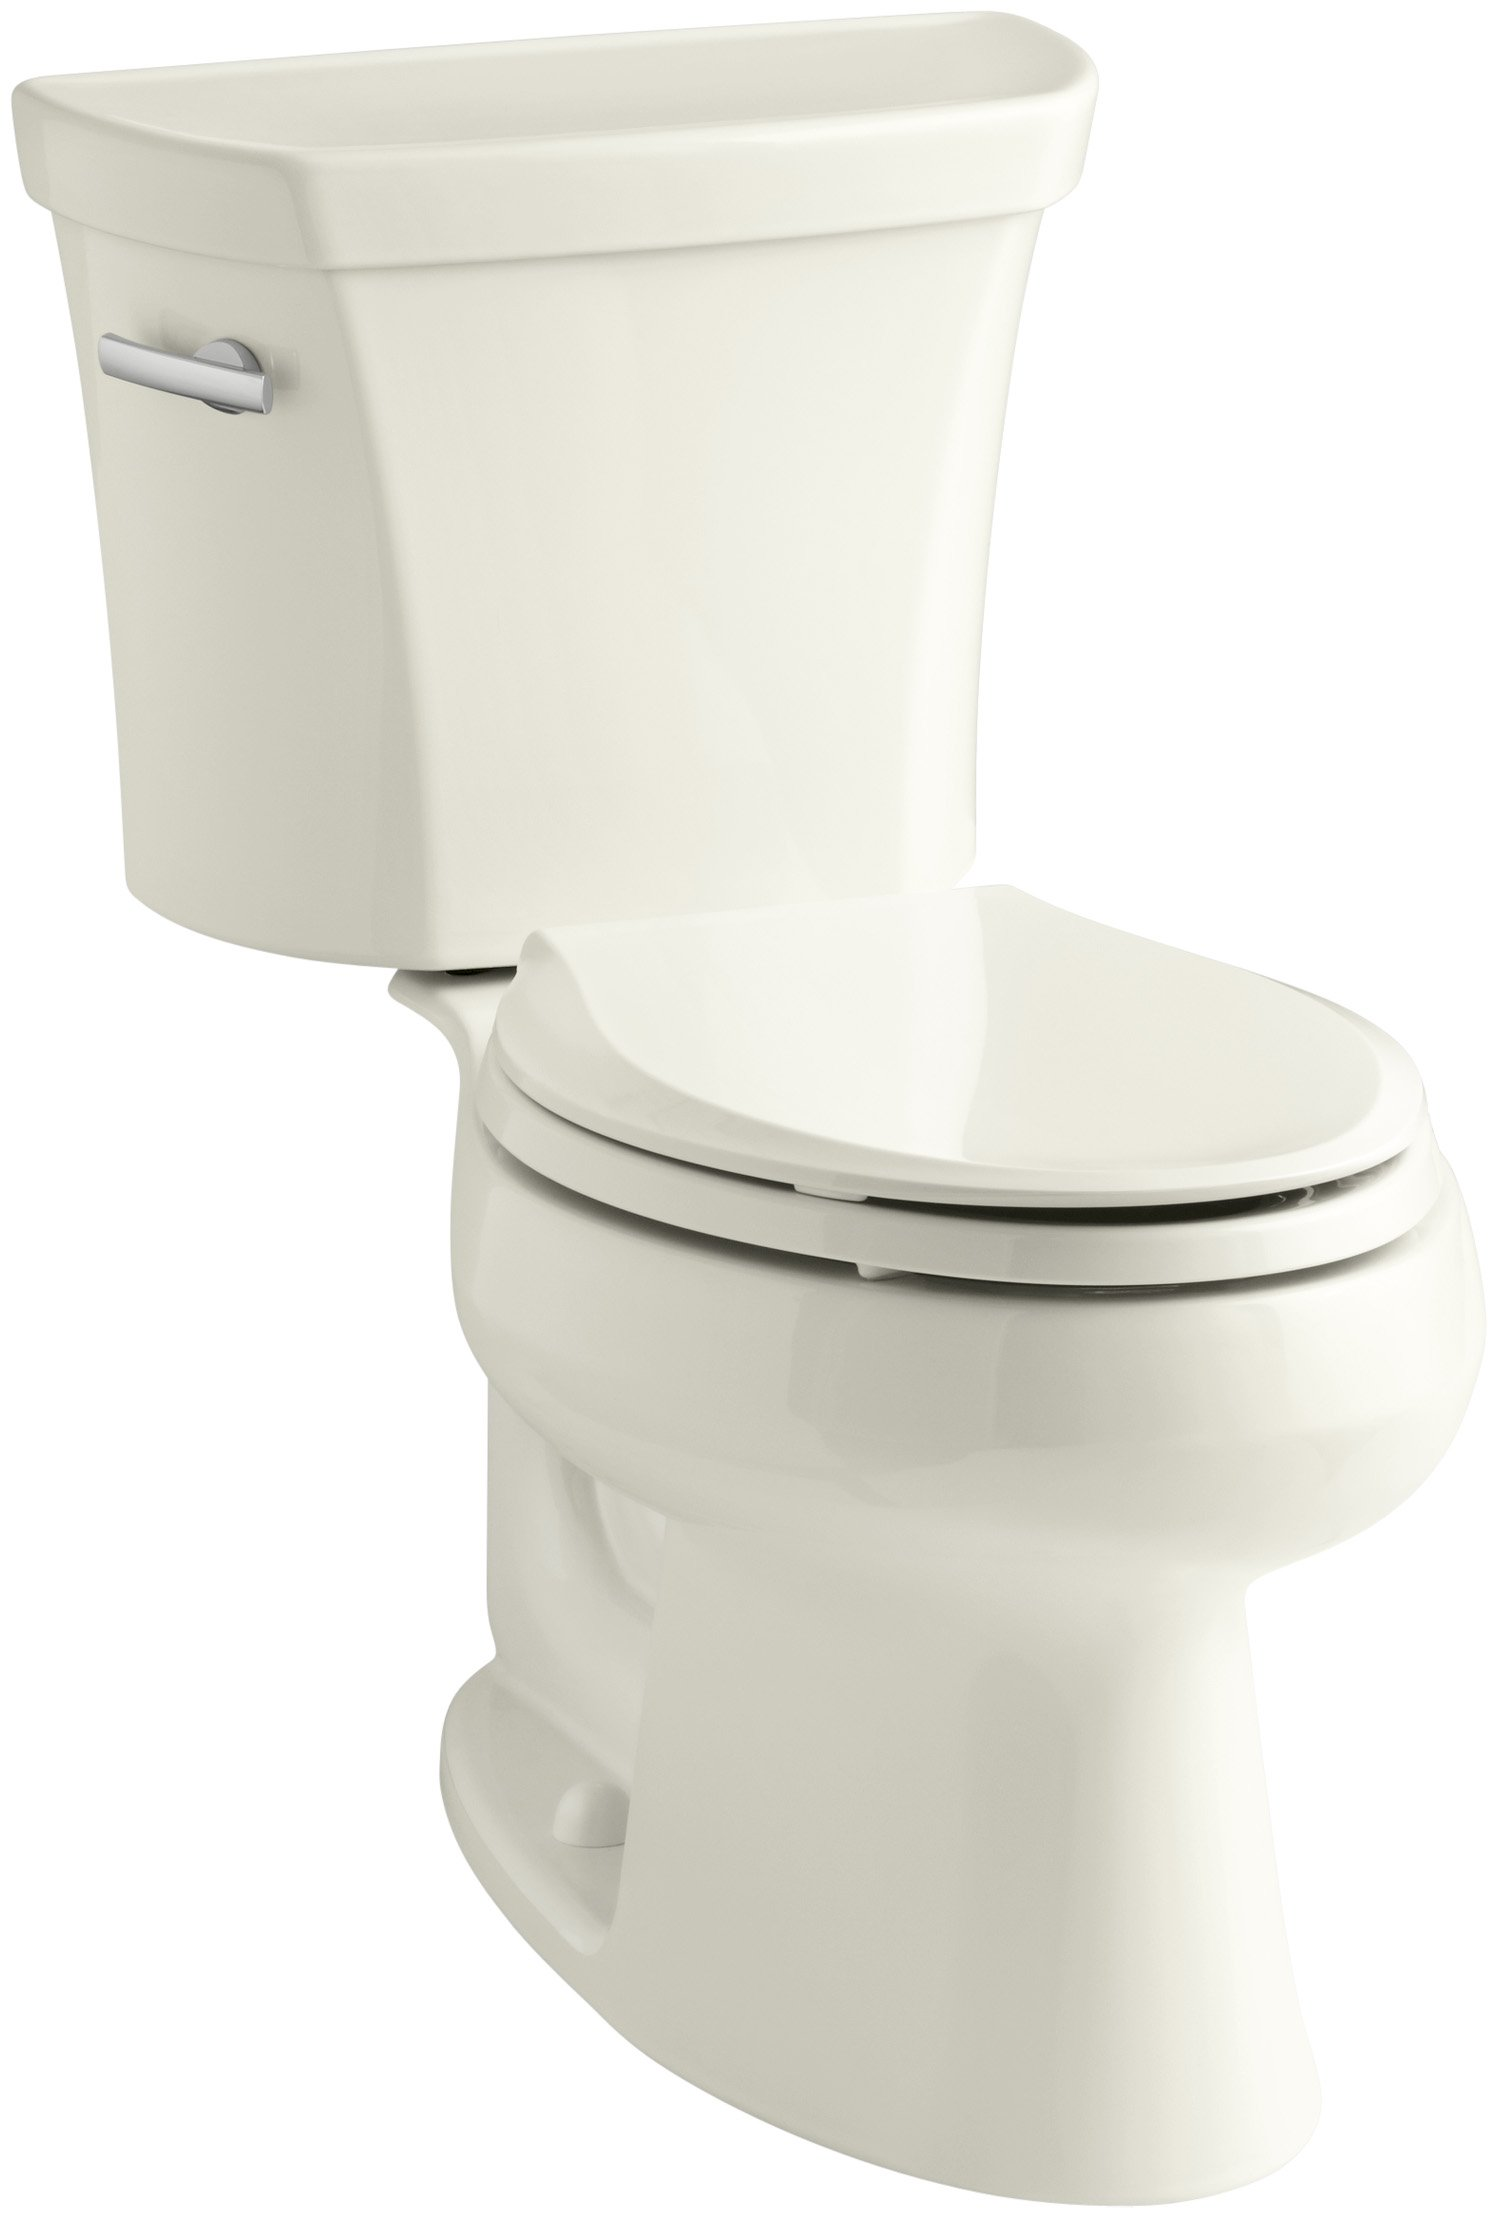 Kohler K-3978-96 Wellworth Elongated 1.6 gpf Toilet, Biscuit by Kohler